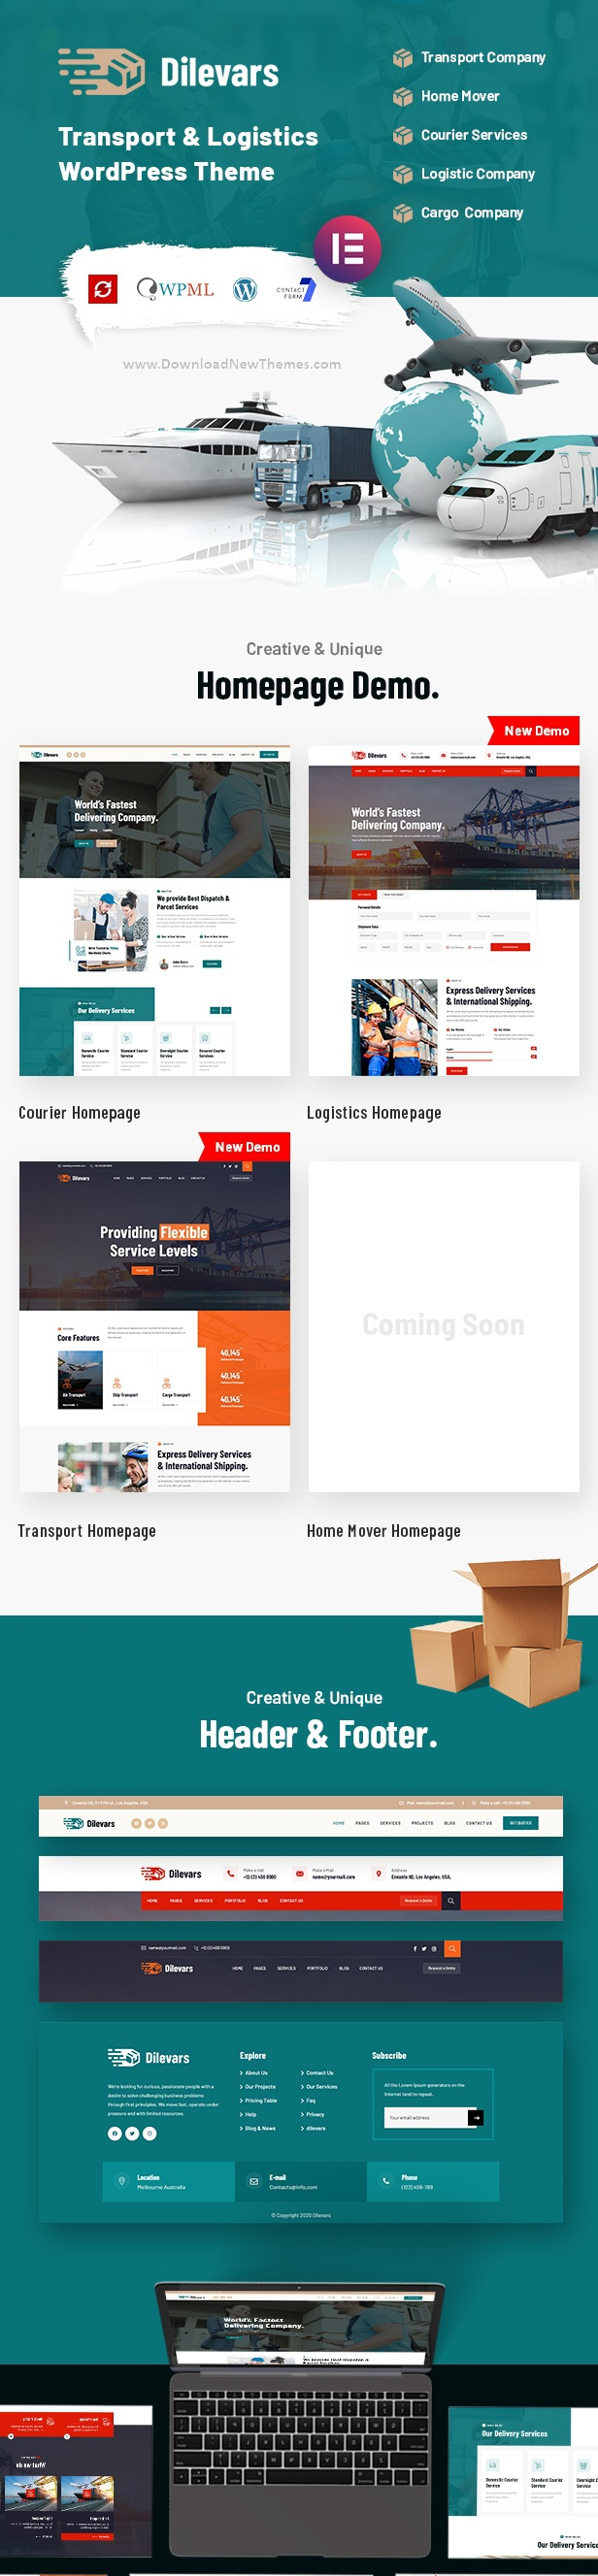 Transportation and Logistics Company Website Theme